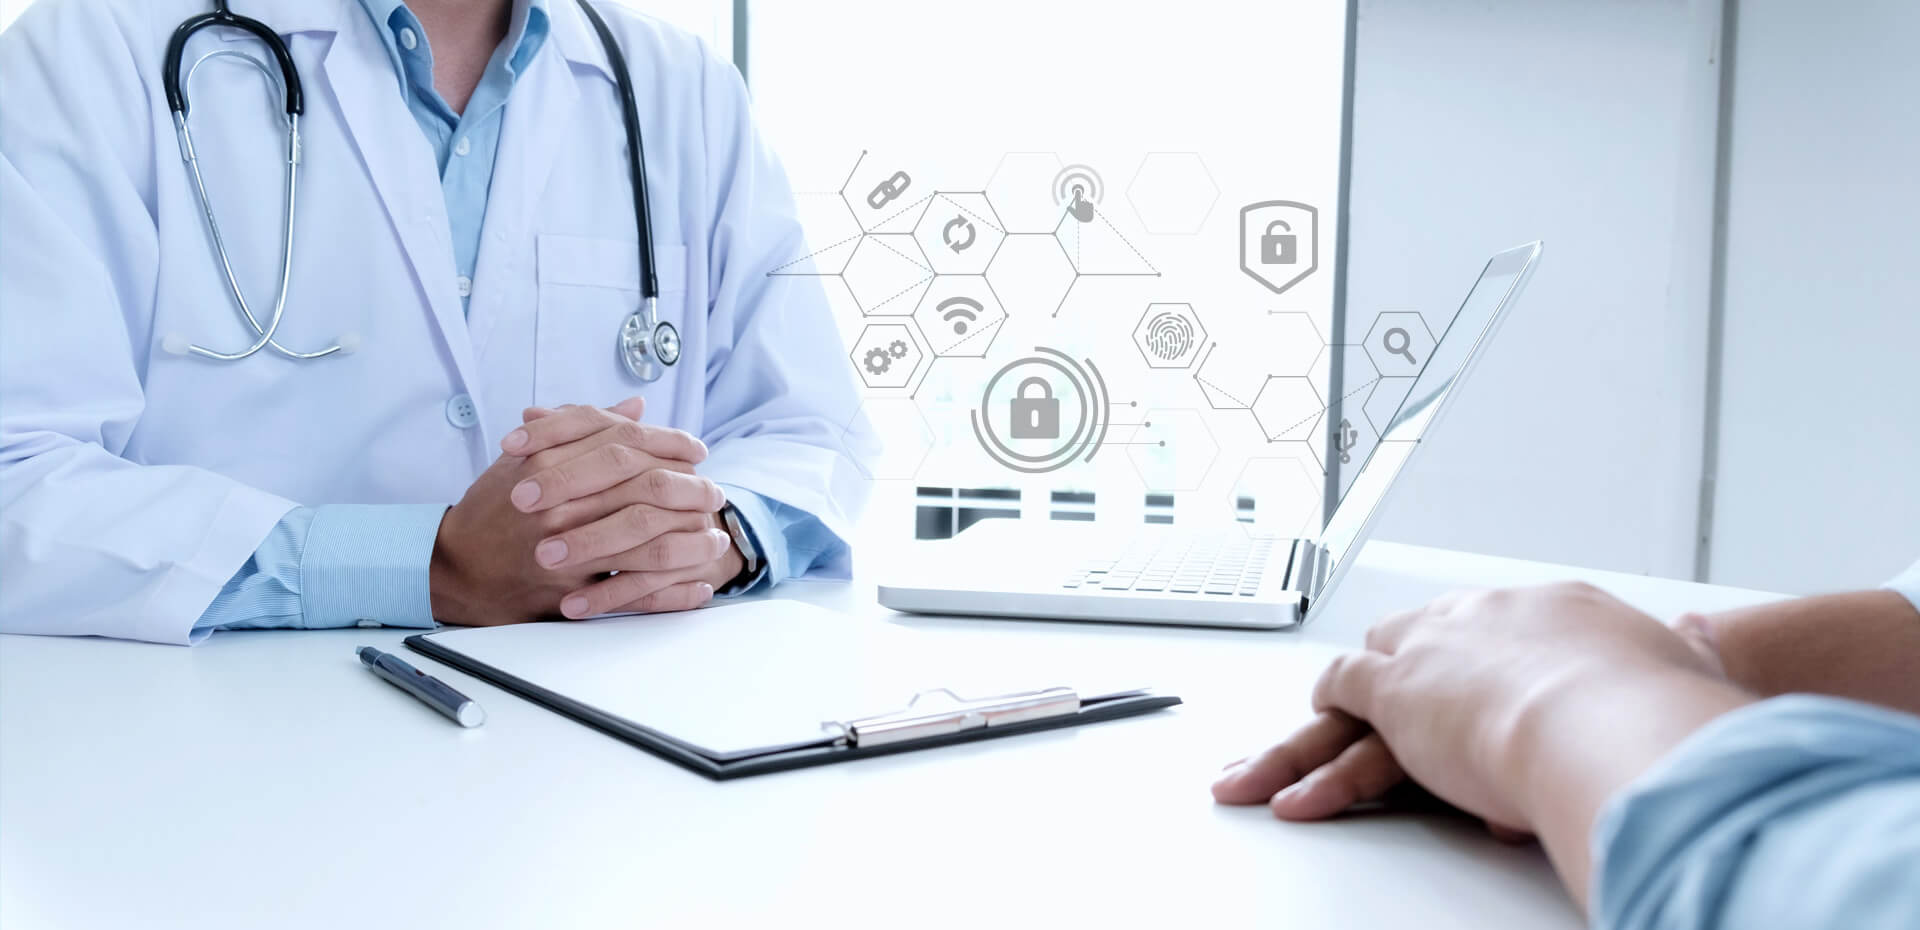 Why Do Doctors Need Practice Management Software?